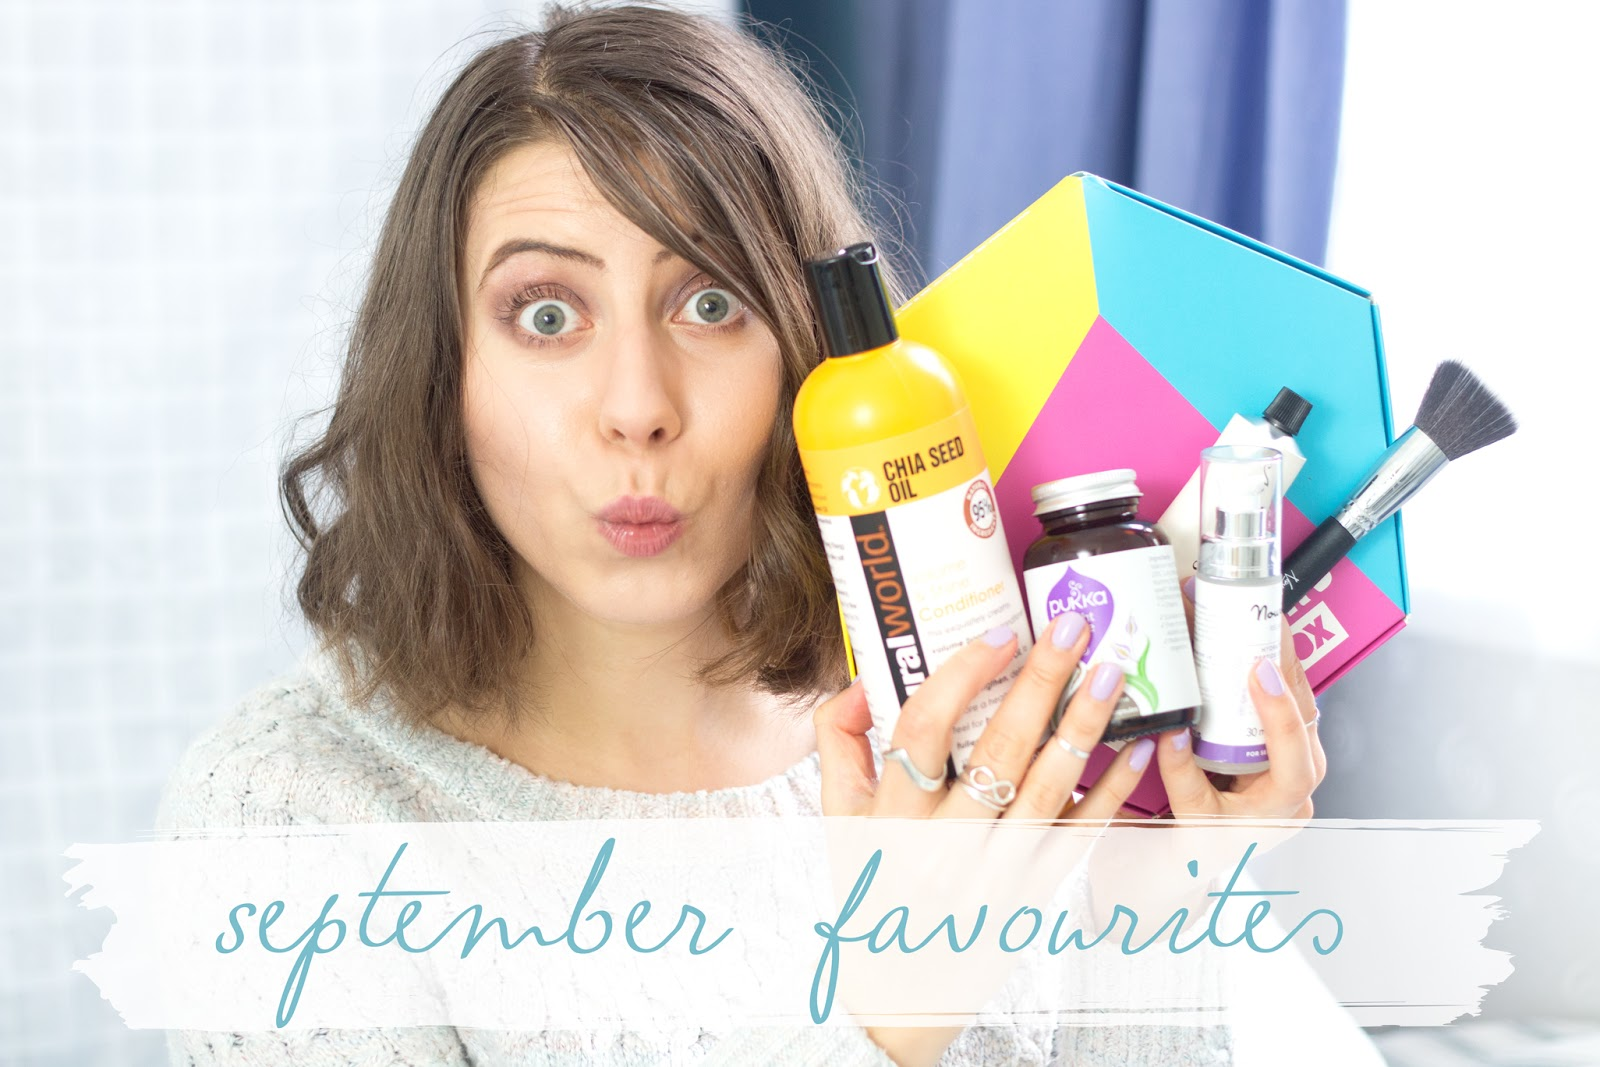 THE VIDEO: SEPTEMBER FAVOURITES